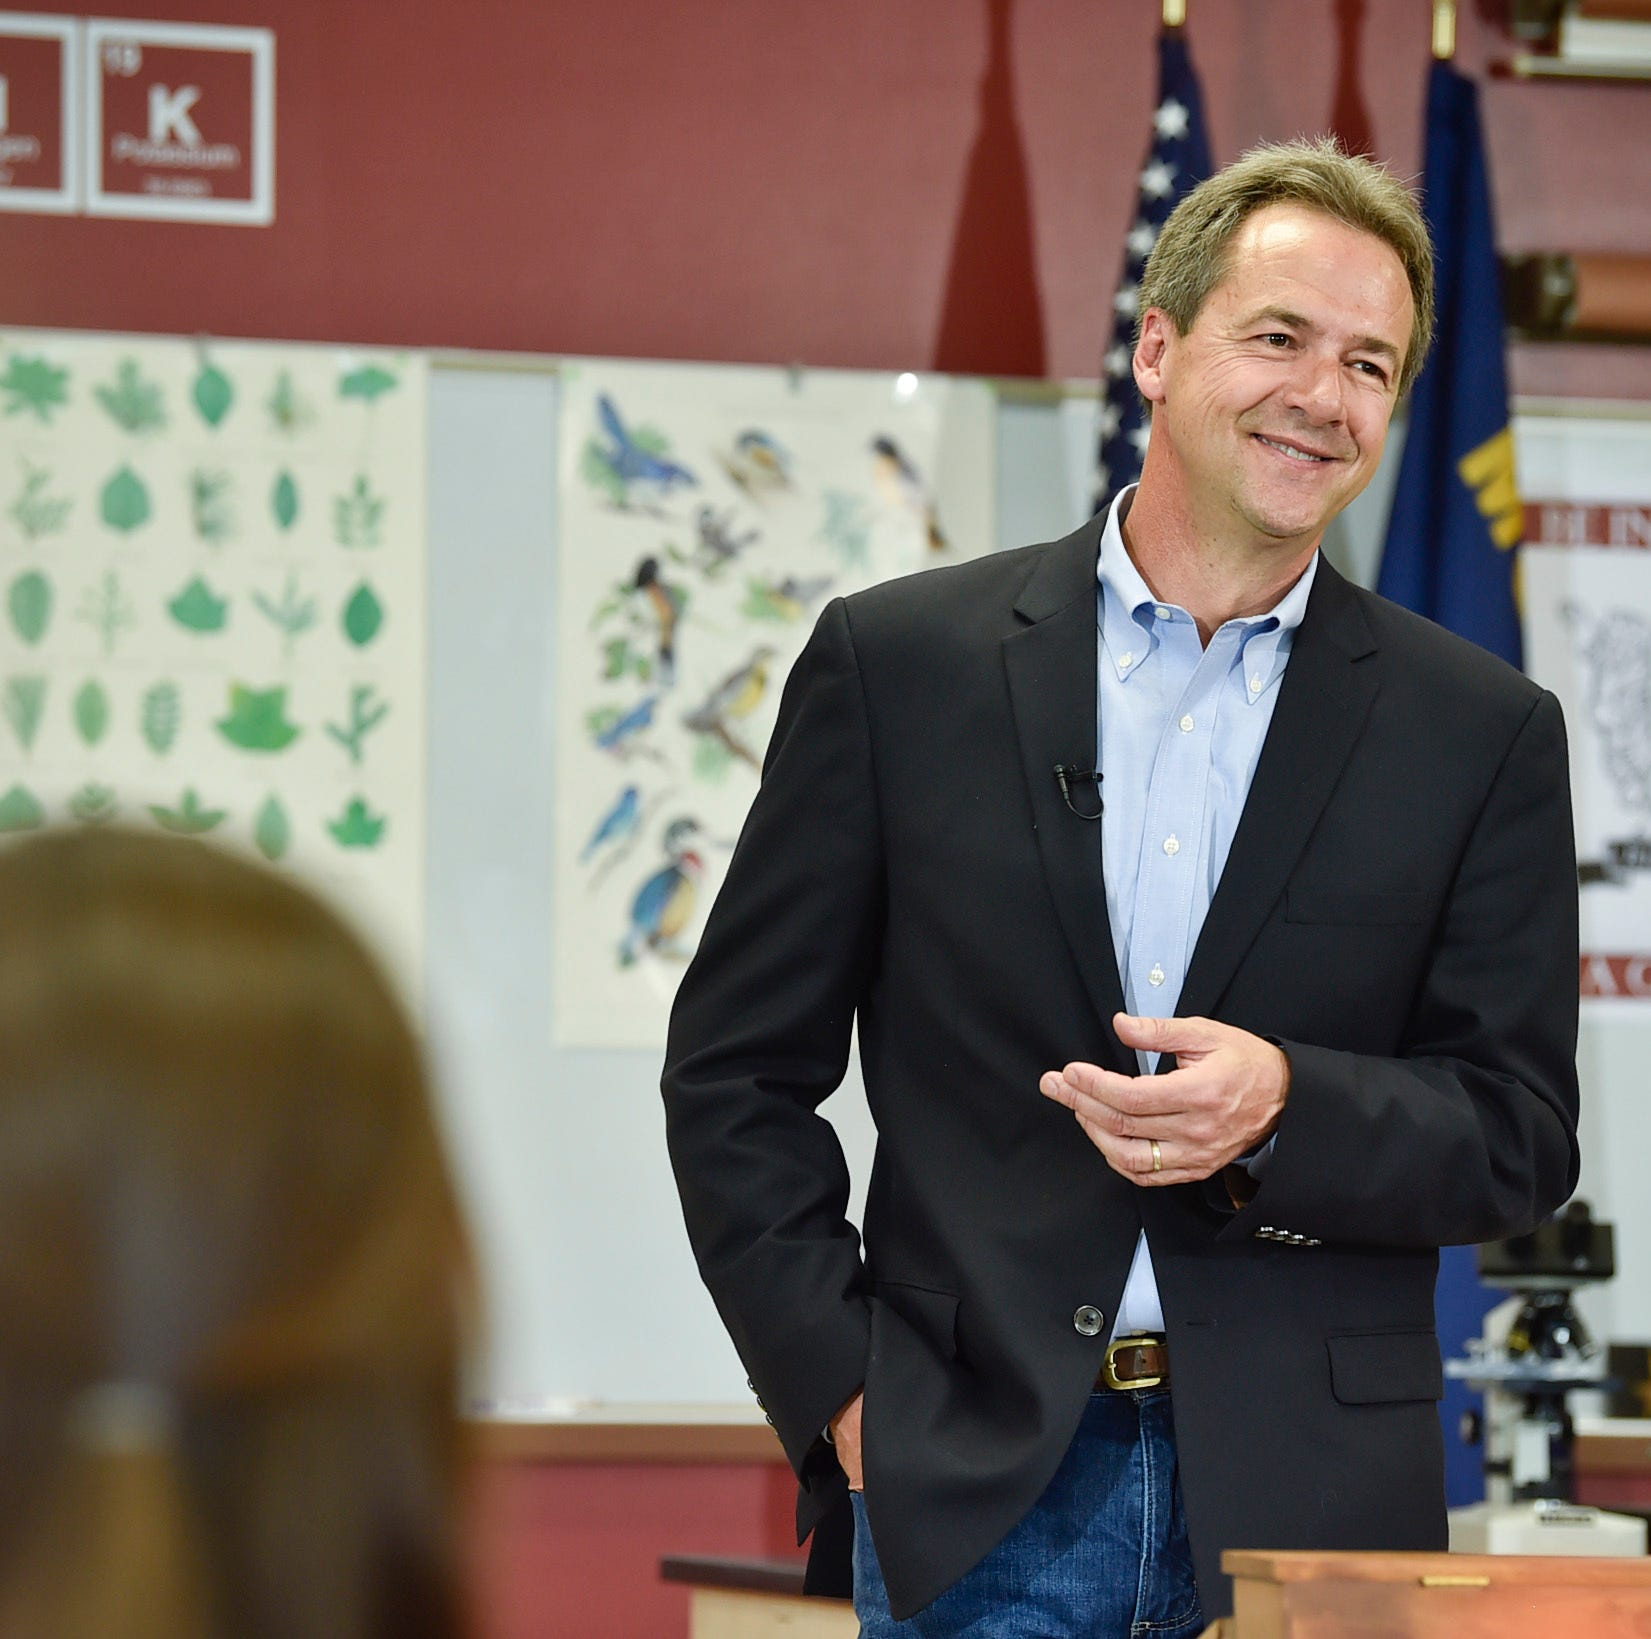 Steve Bullock joins 2020 Democratic presidential field